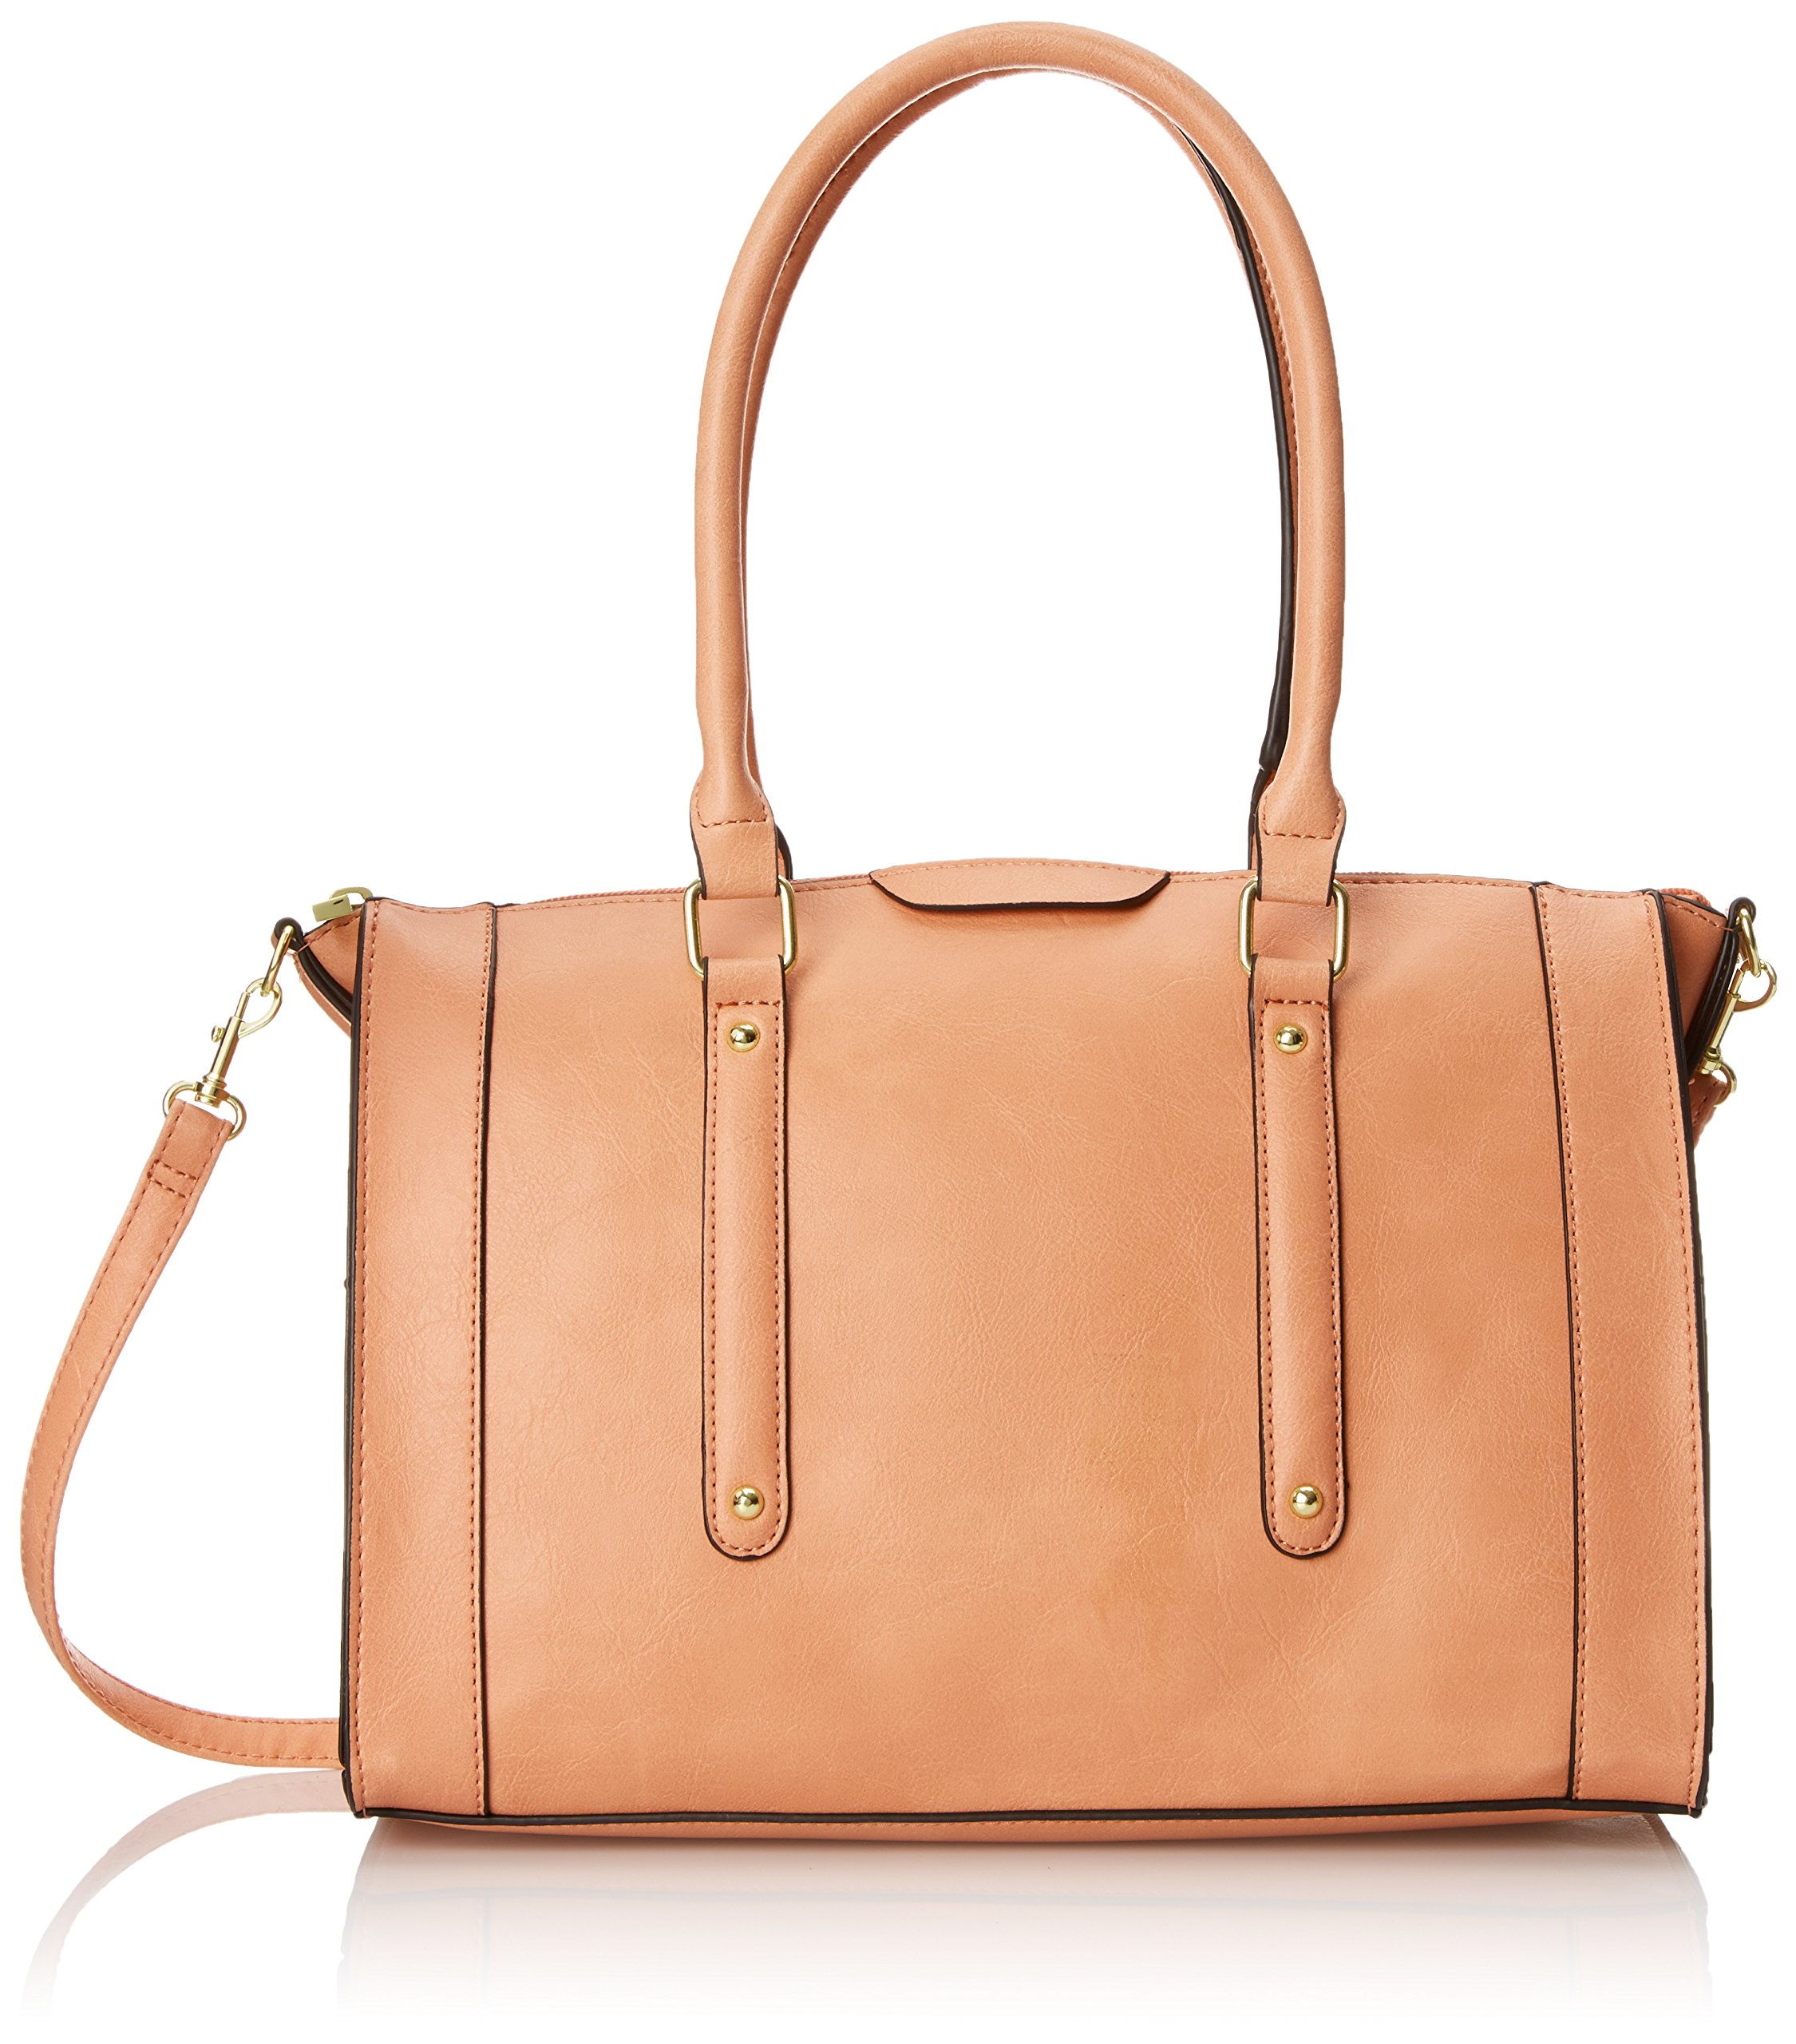 Emilie M. Jolene Satchel Top Handle Bag, Salmon, One Size